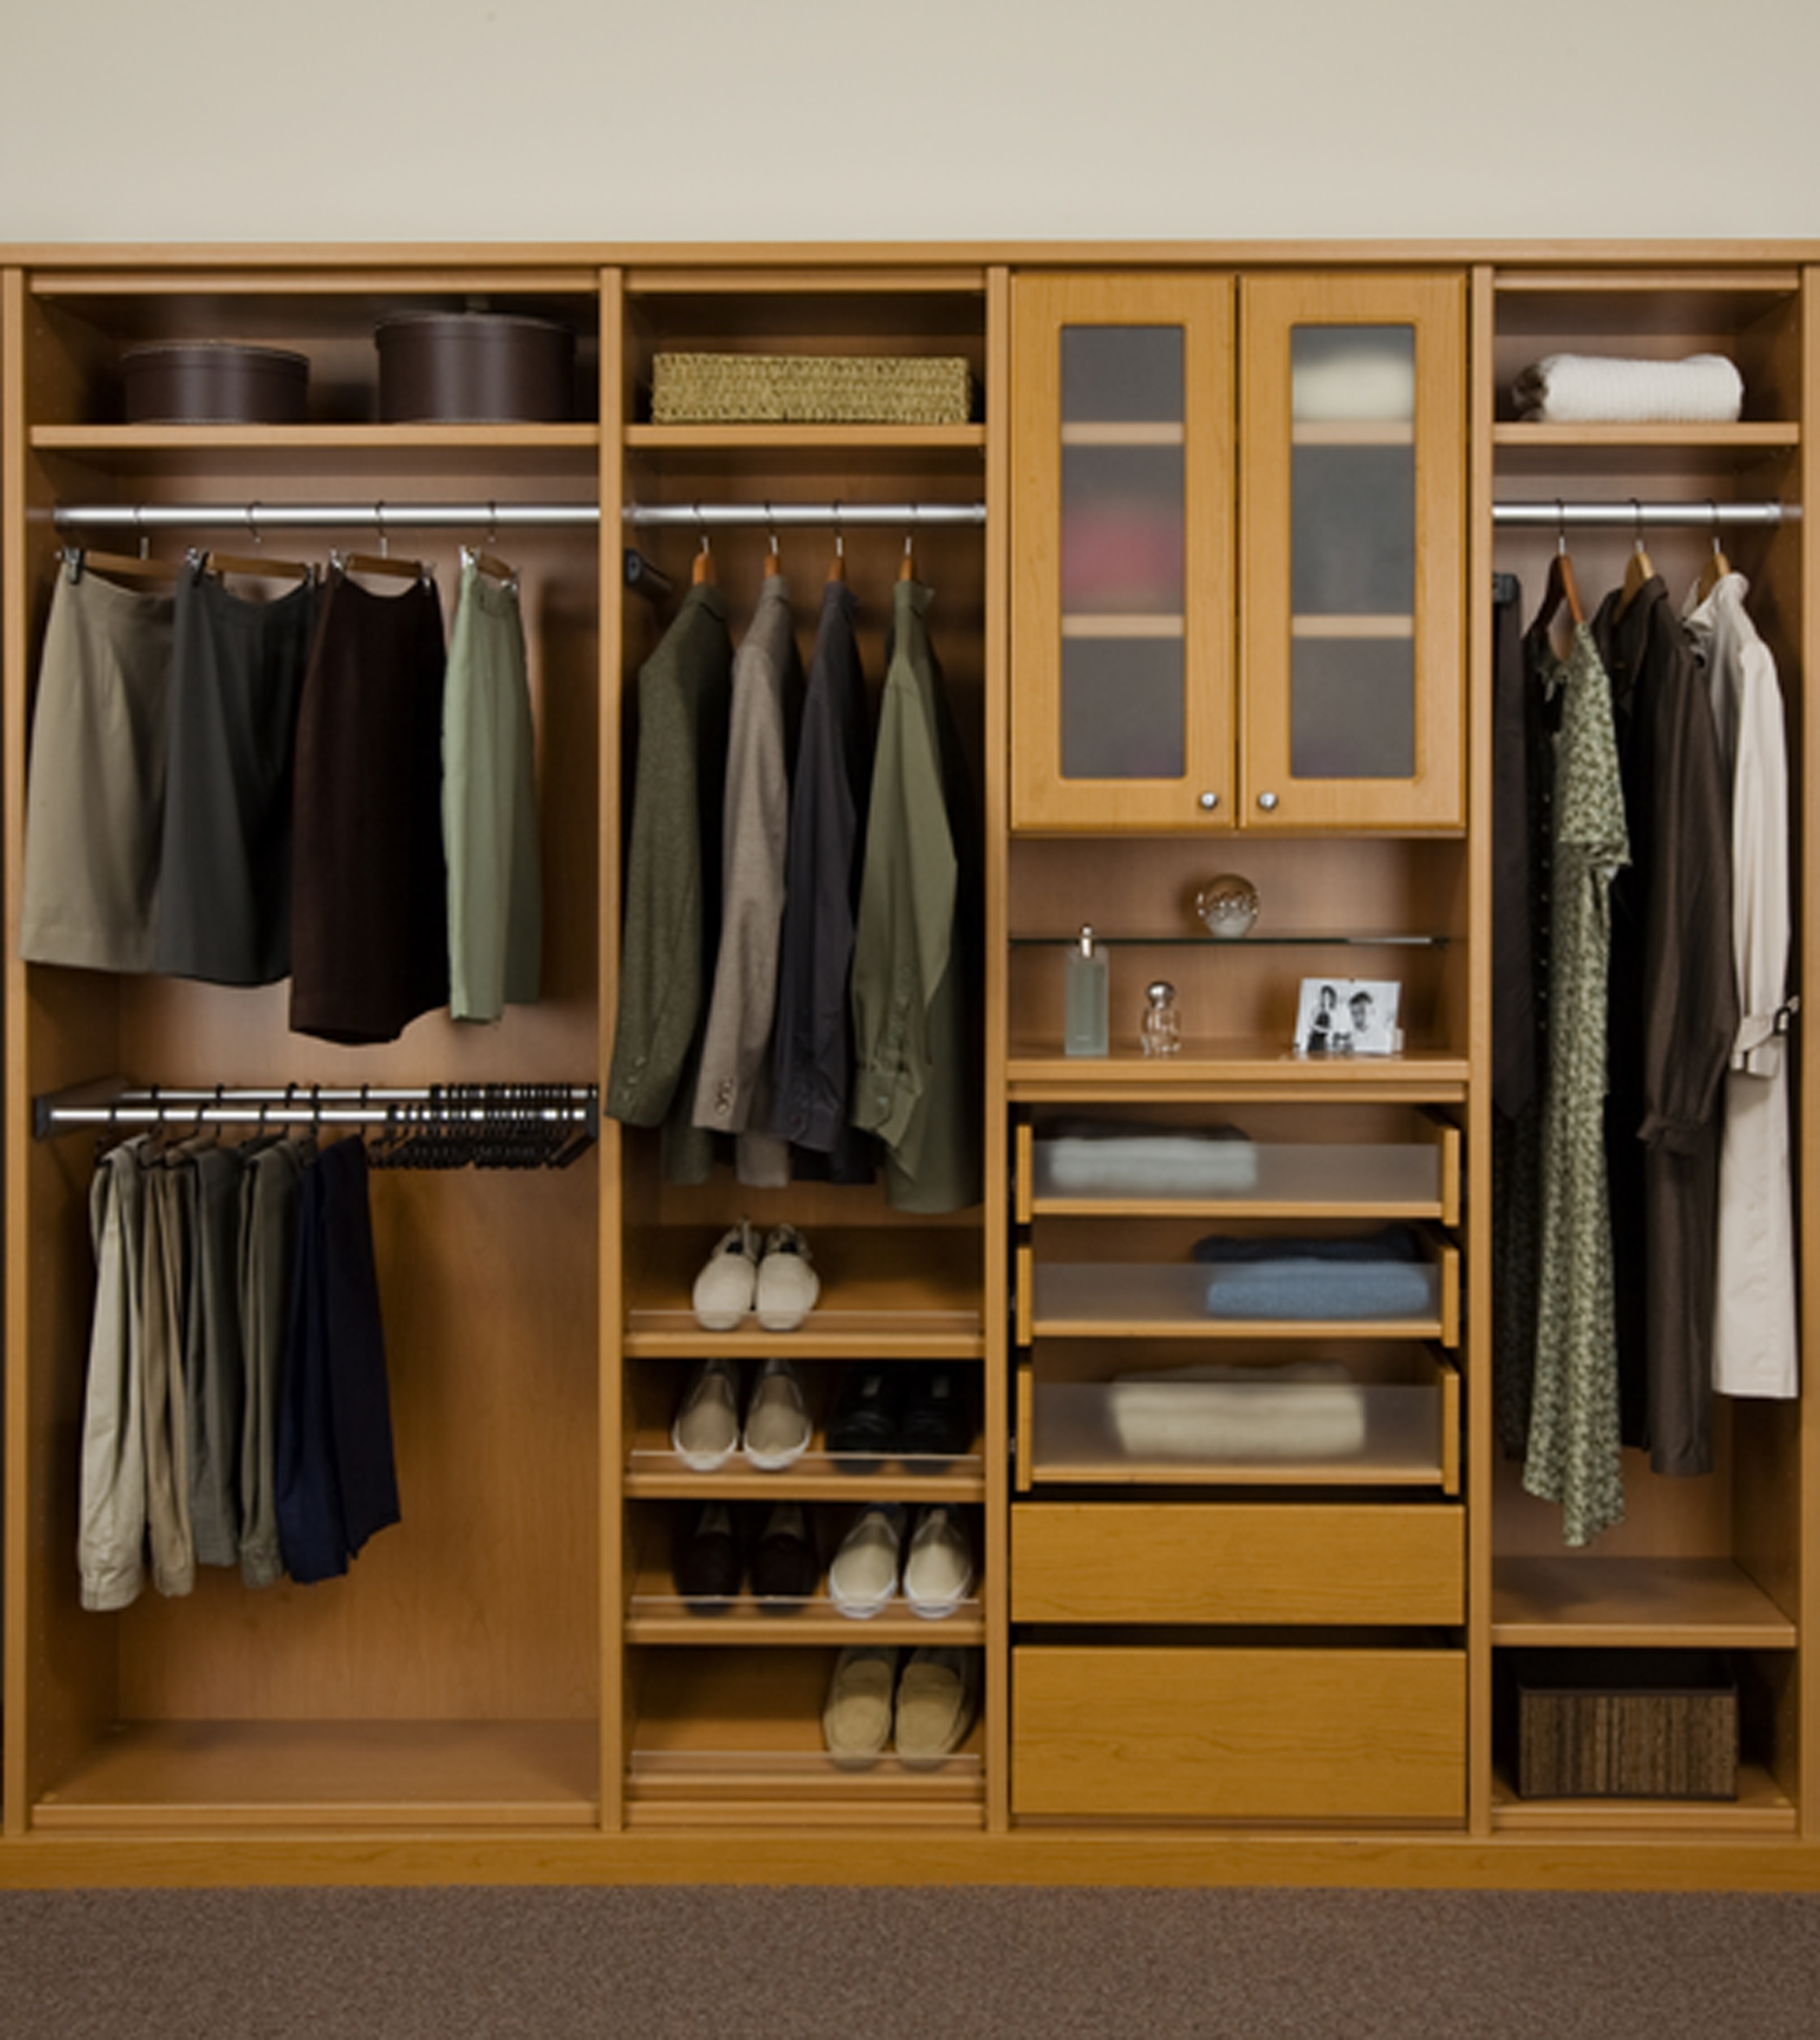 Delightful Closet Organizer Design Ideas Part - 9: IKEA Closet Organizer Ideas (Image 8 Of 10)